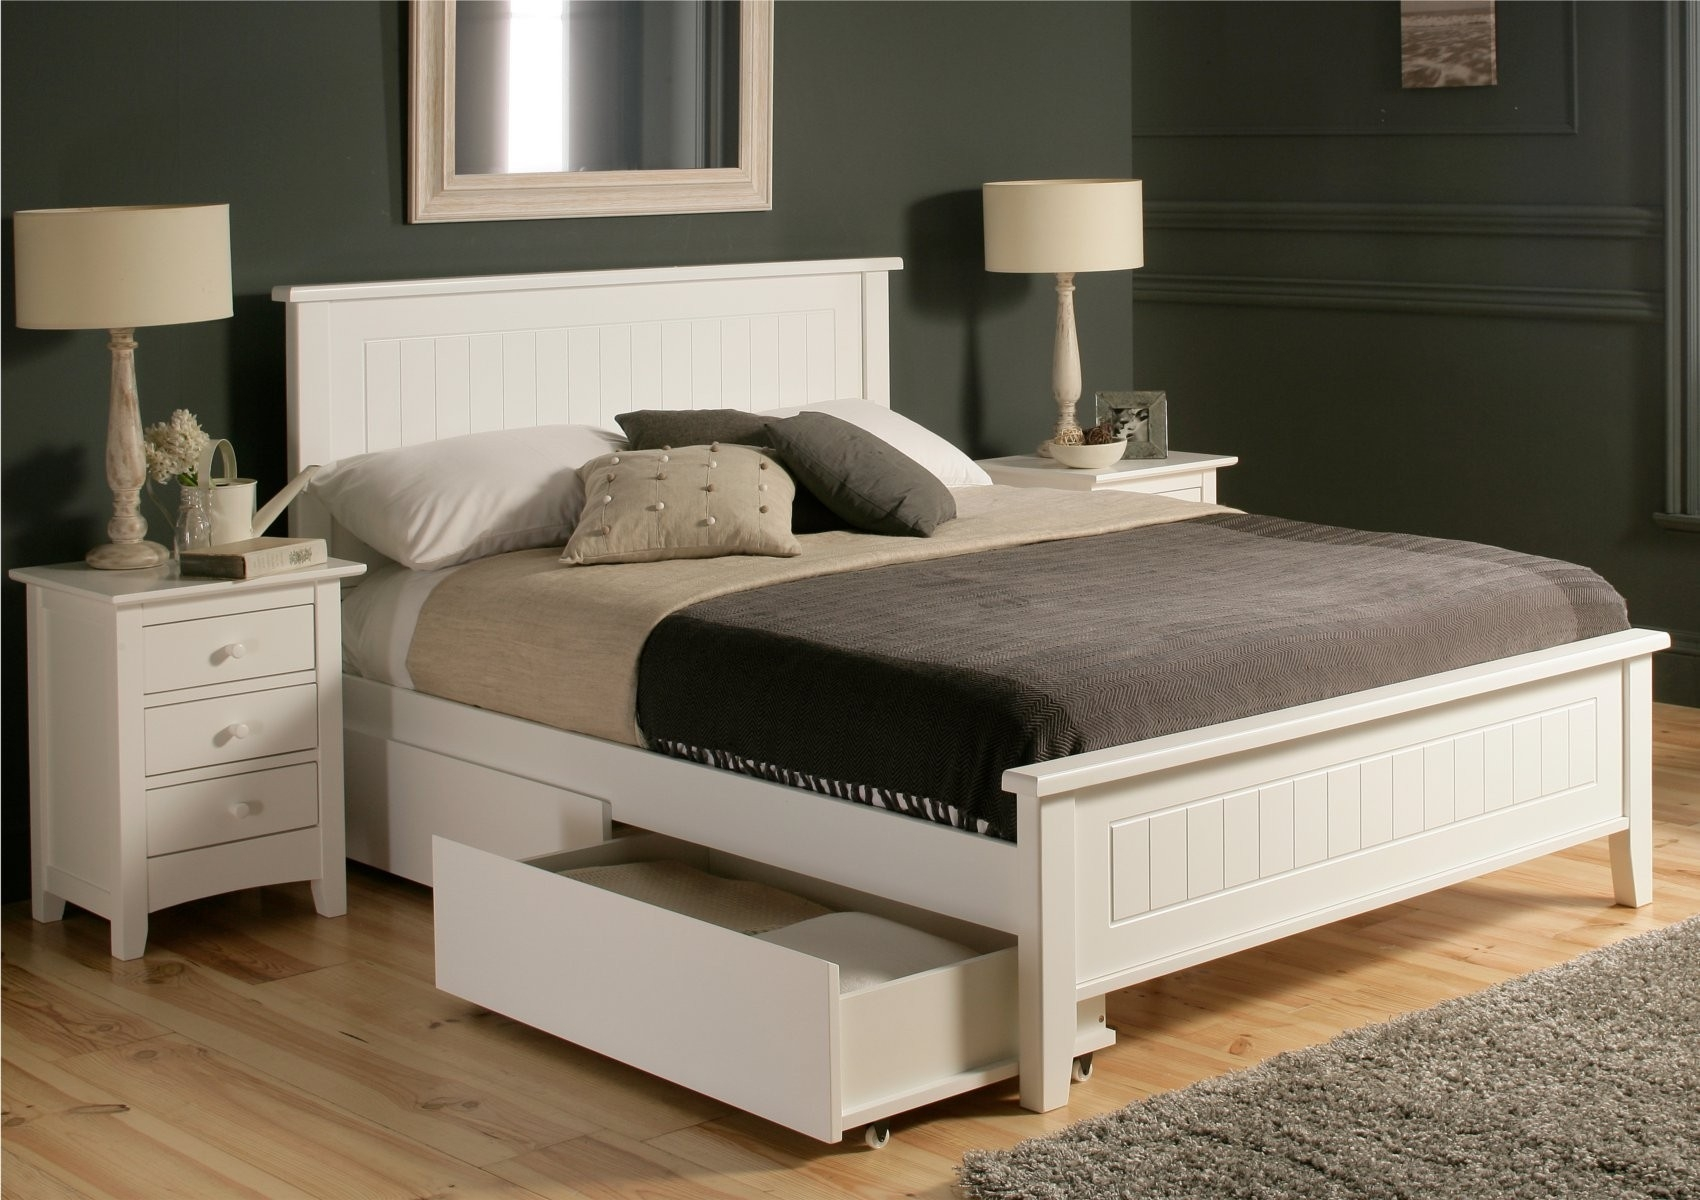 Queen Size Wood Bed Frame With Storage